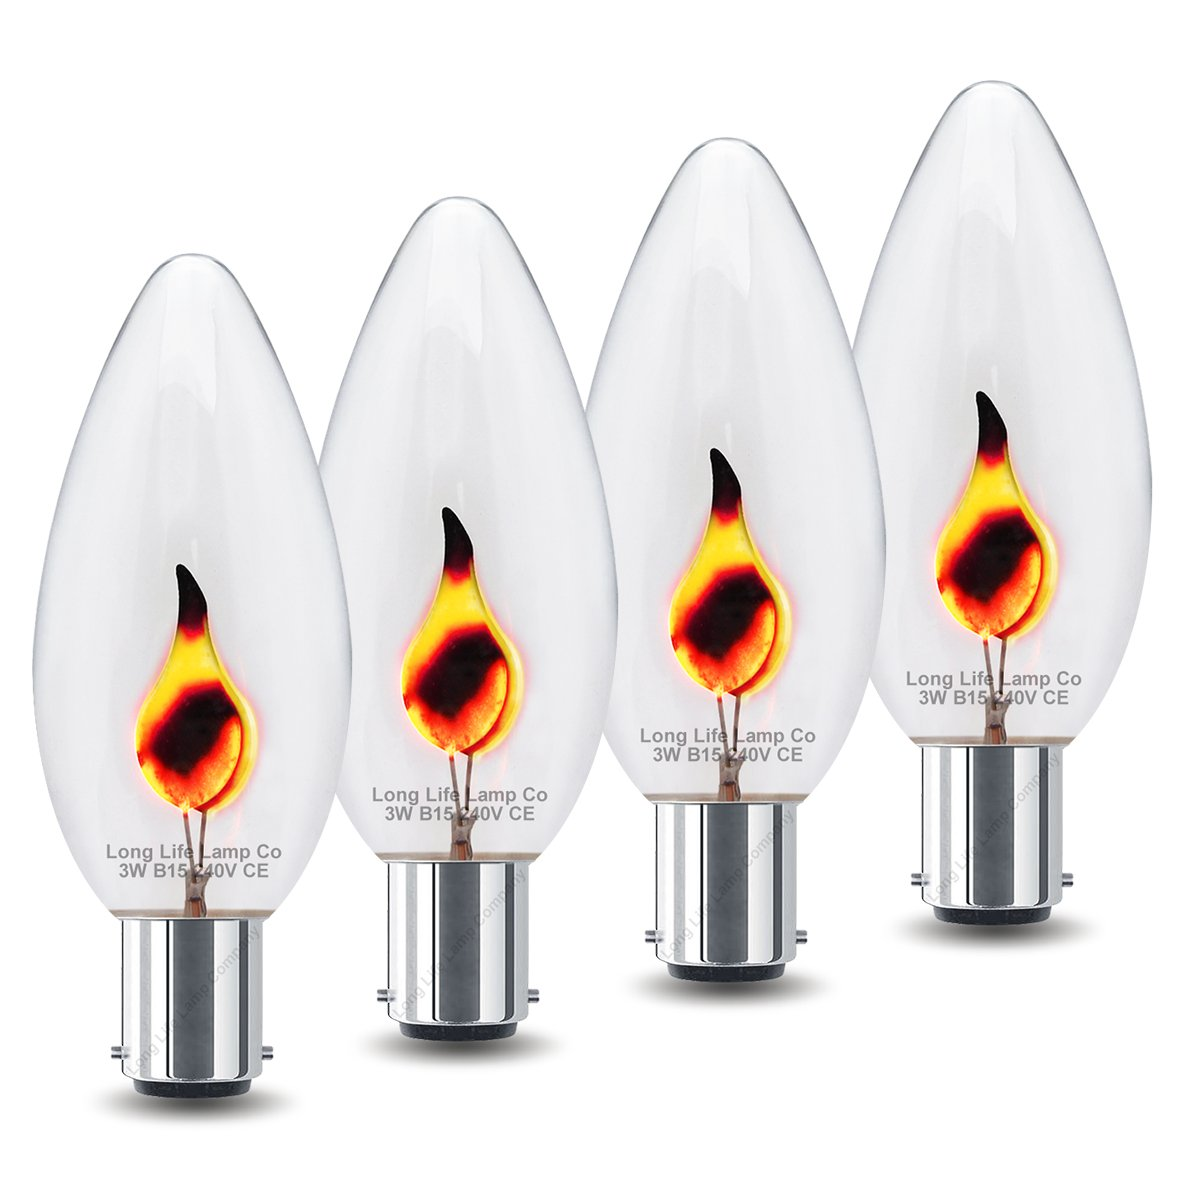 4 x 3w Flicker Flame Candle Light Bulb B15 Small Bayonet Long Life Lamp Company